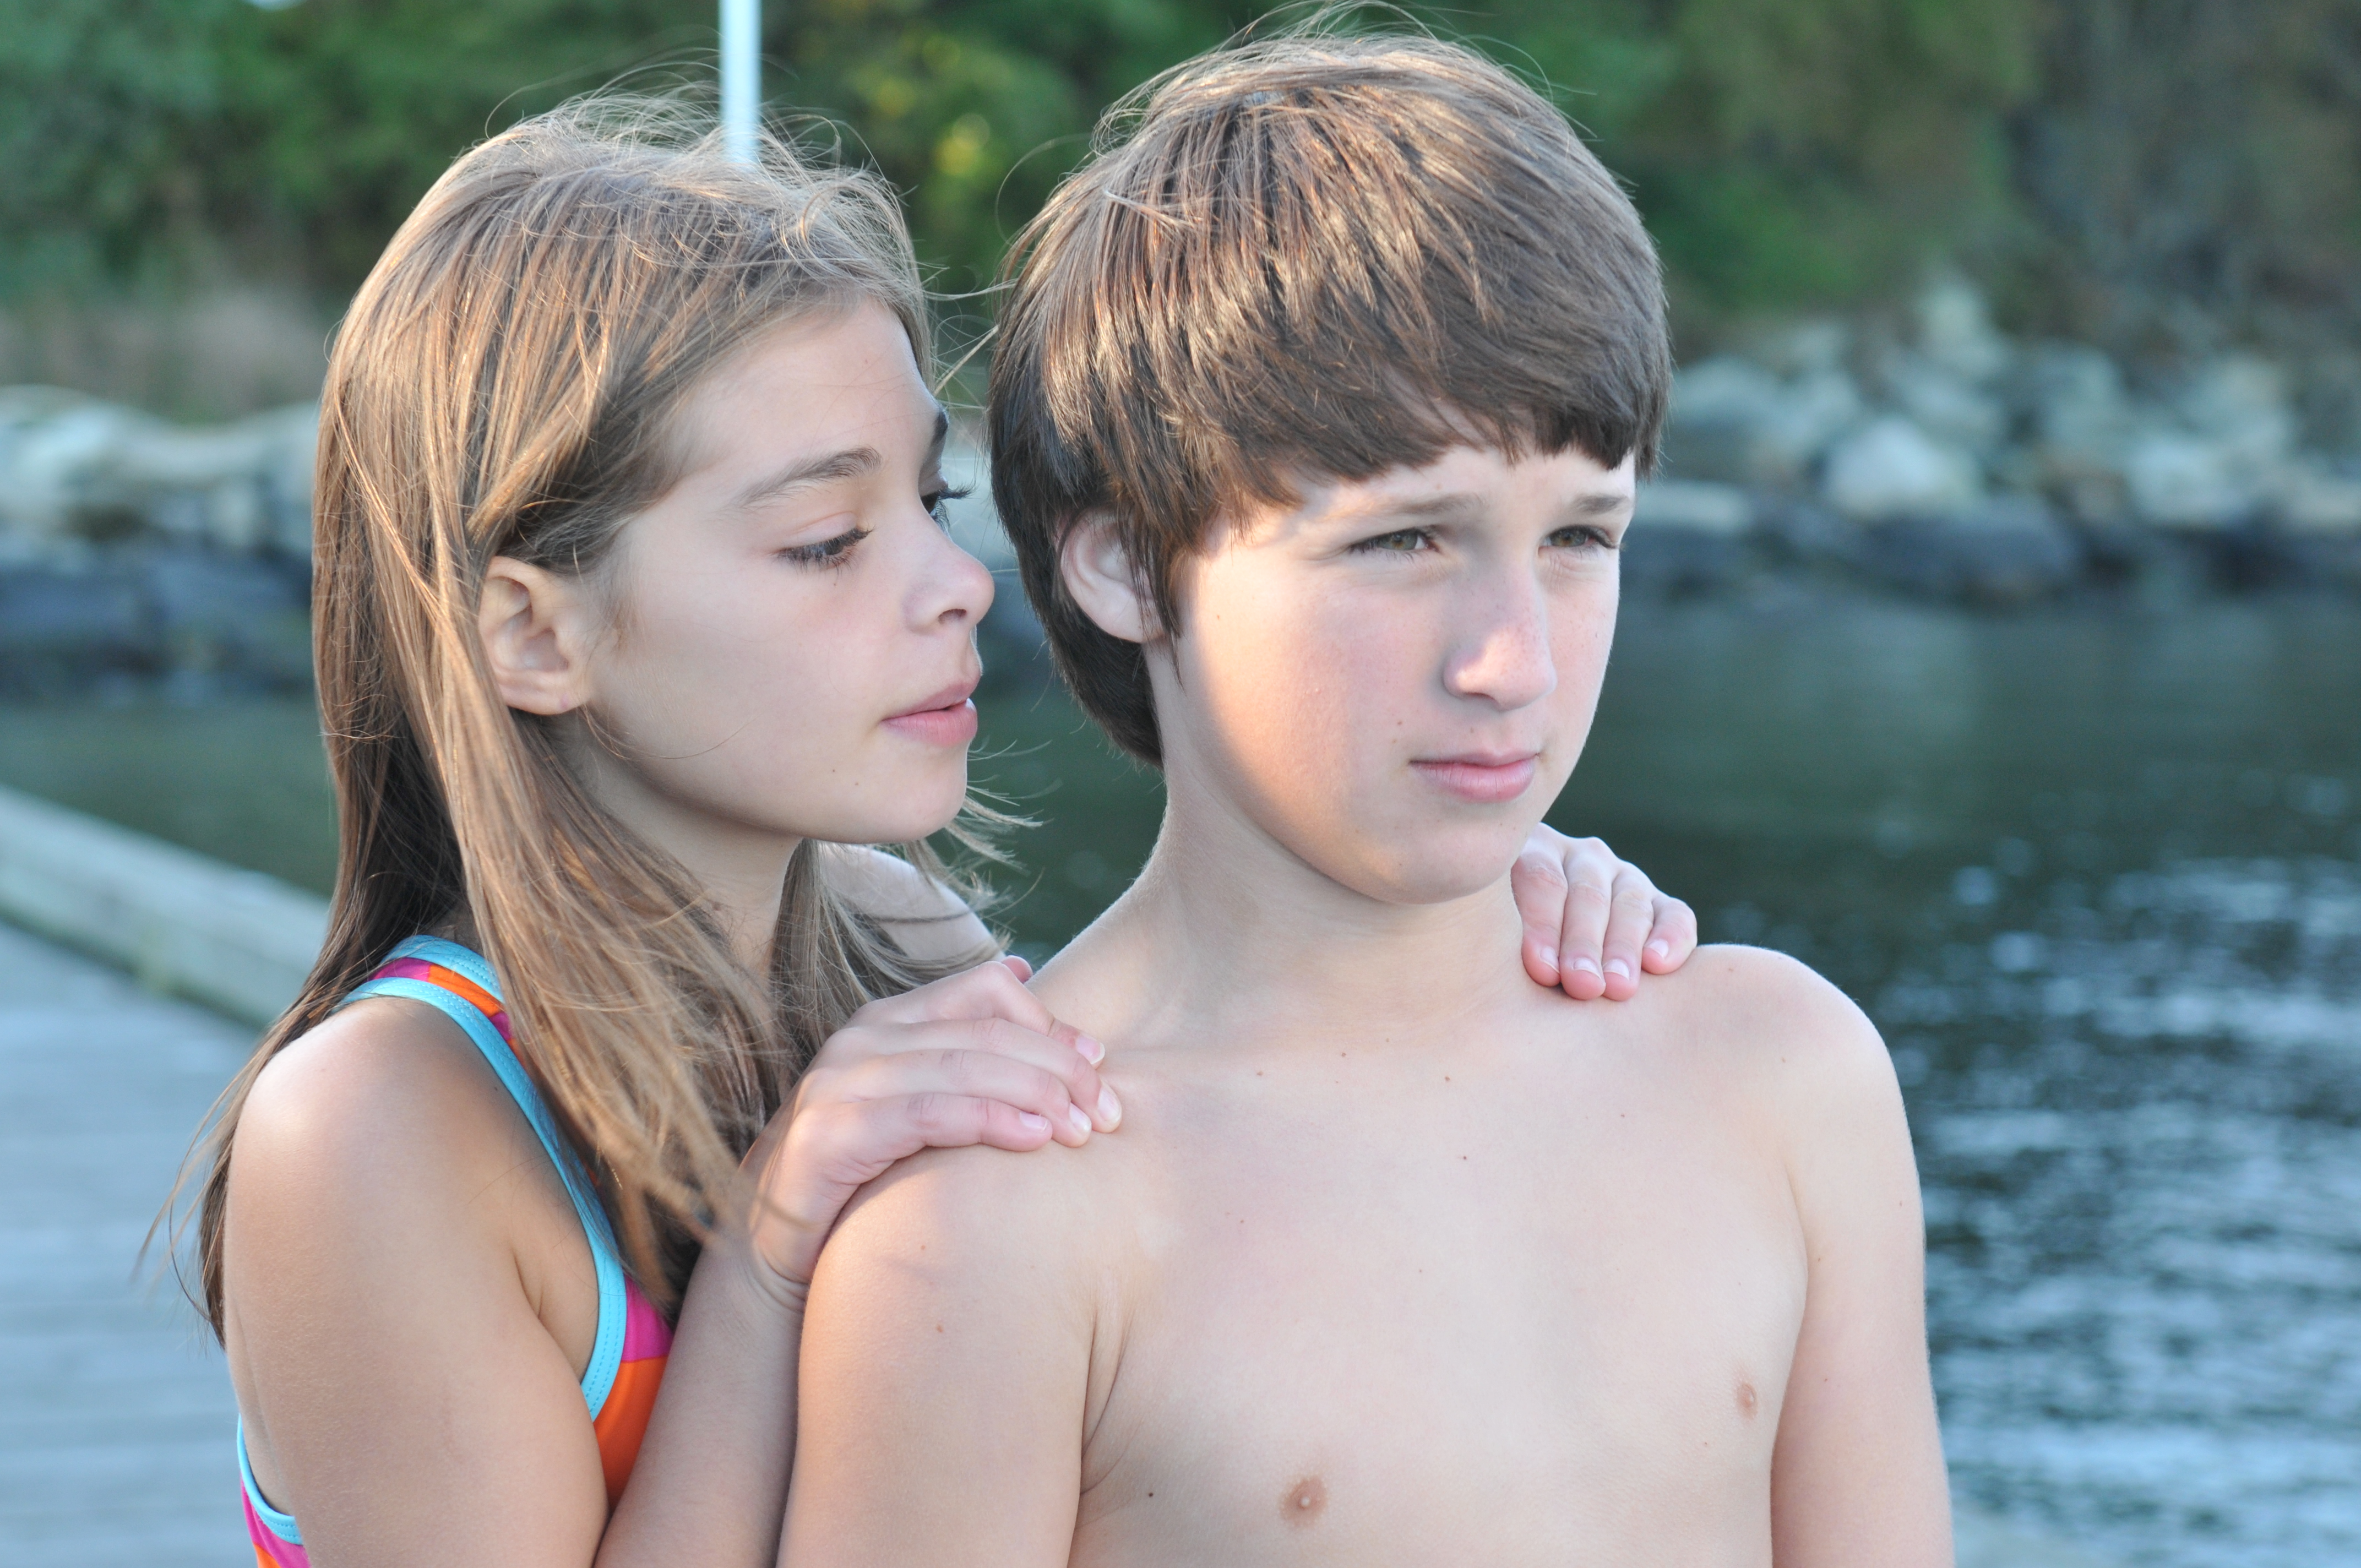 Nikki Hovan and Richard Meehan in Missing William (2014)